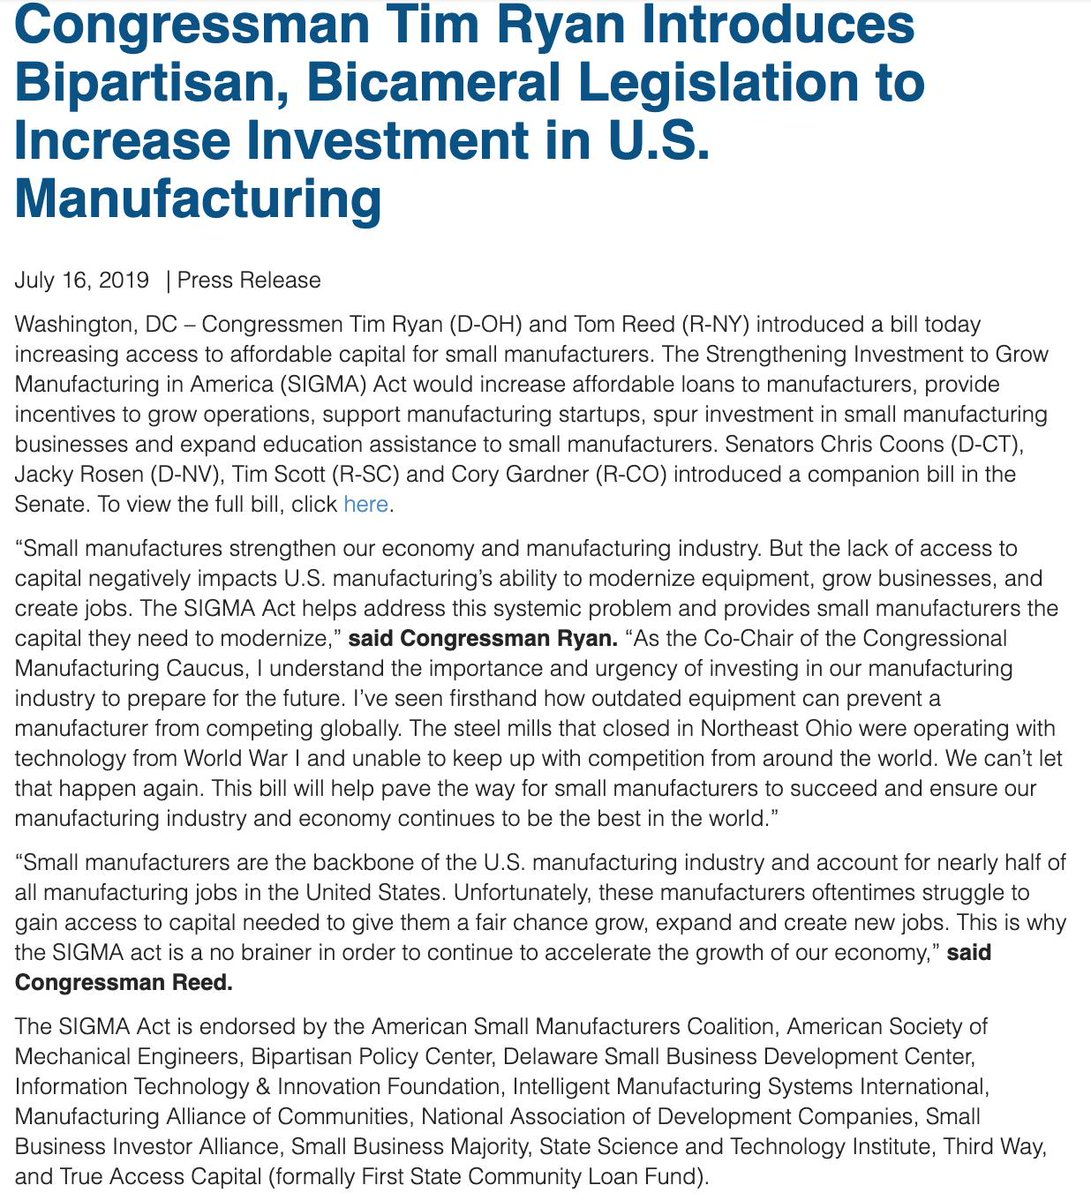 The lack of access to capital negatively impacts US manufacturing's ability to modernize equipment, grow businesses & create jobs. I'm proud to introduce the SIGMA Act with @RepTomReed to help address this  problem & provide small manufacturers the capital they need to modernize.